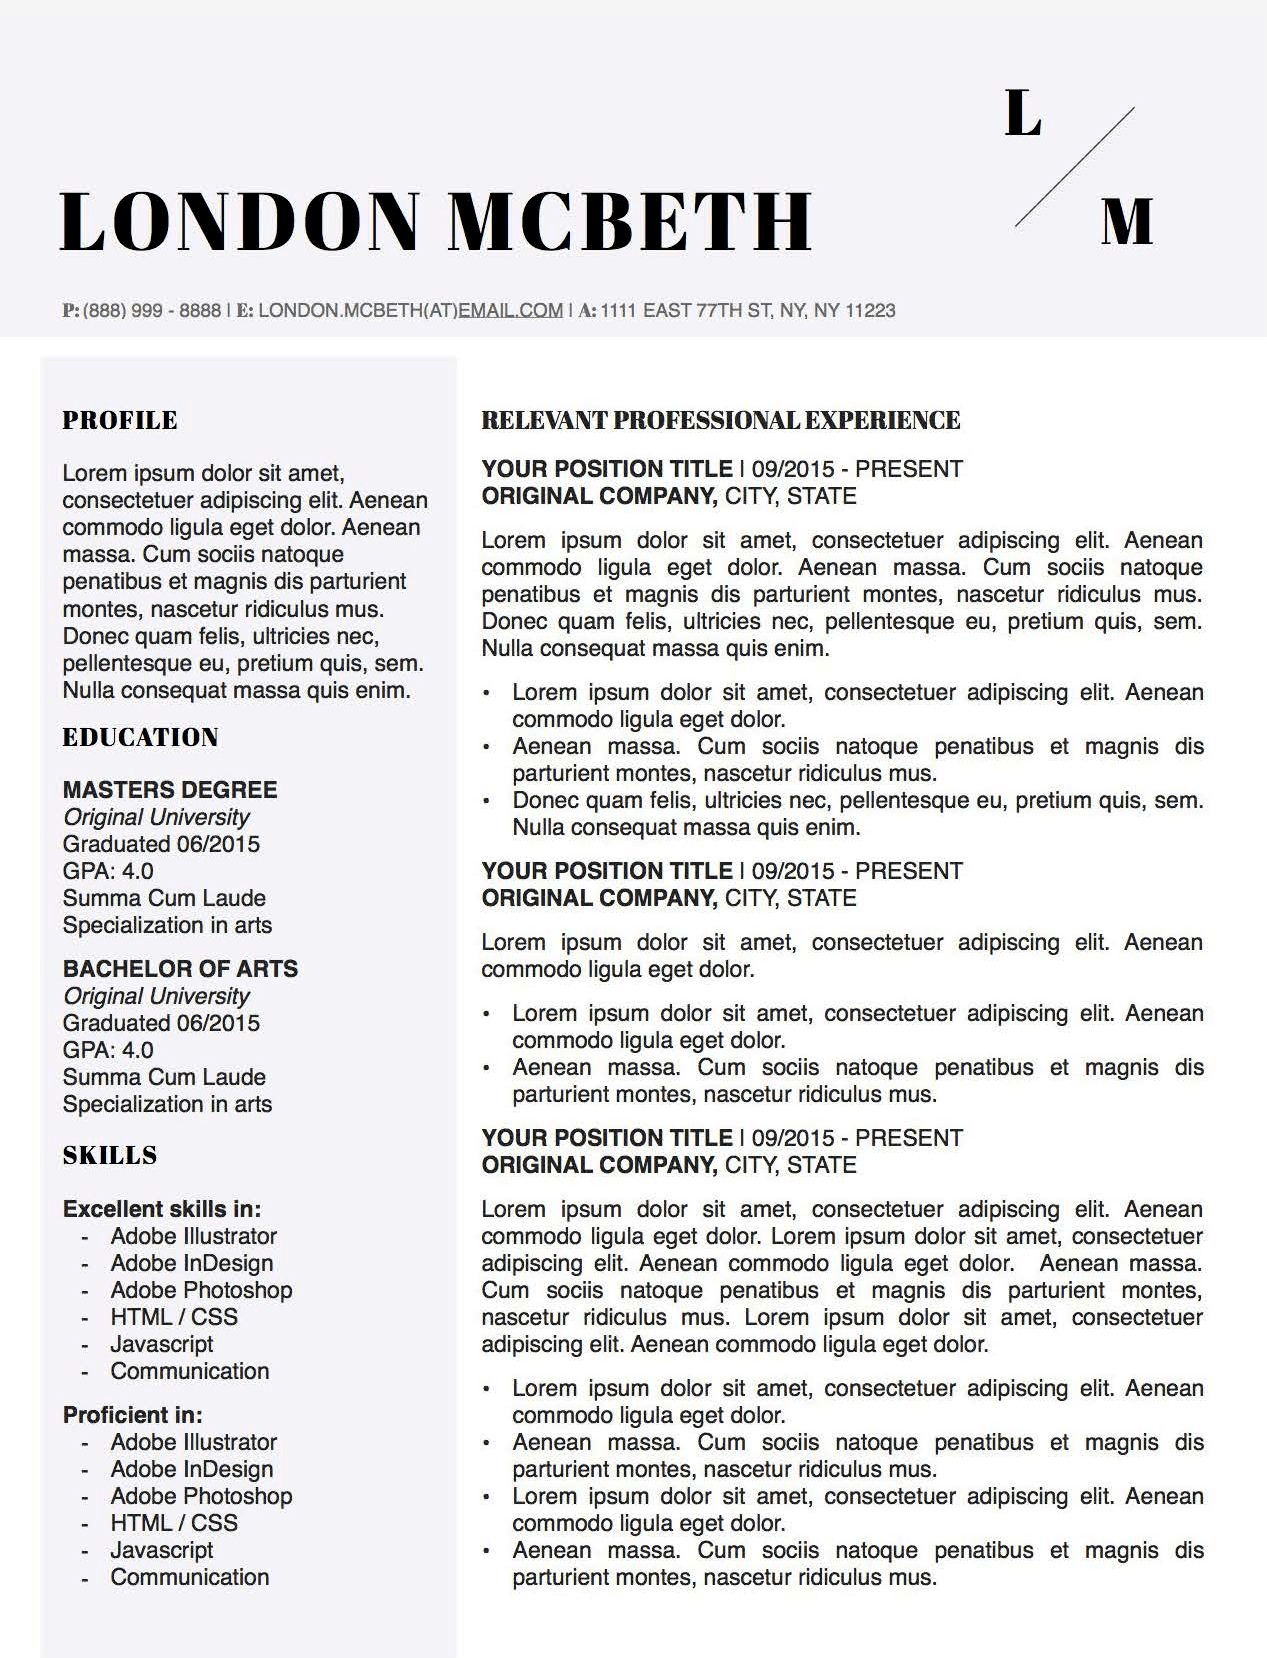 London Mcbeth Resume Template